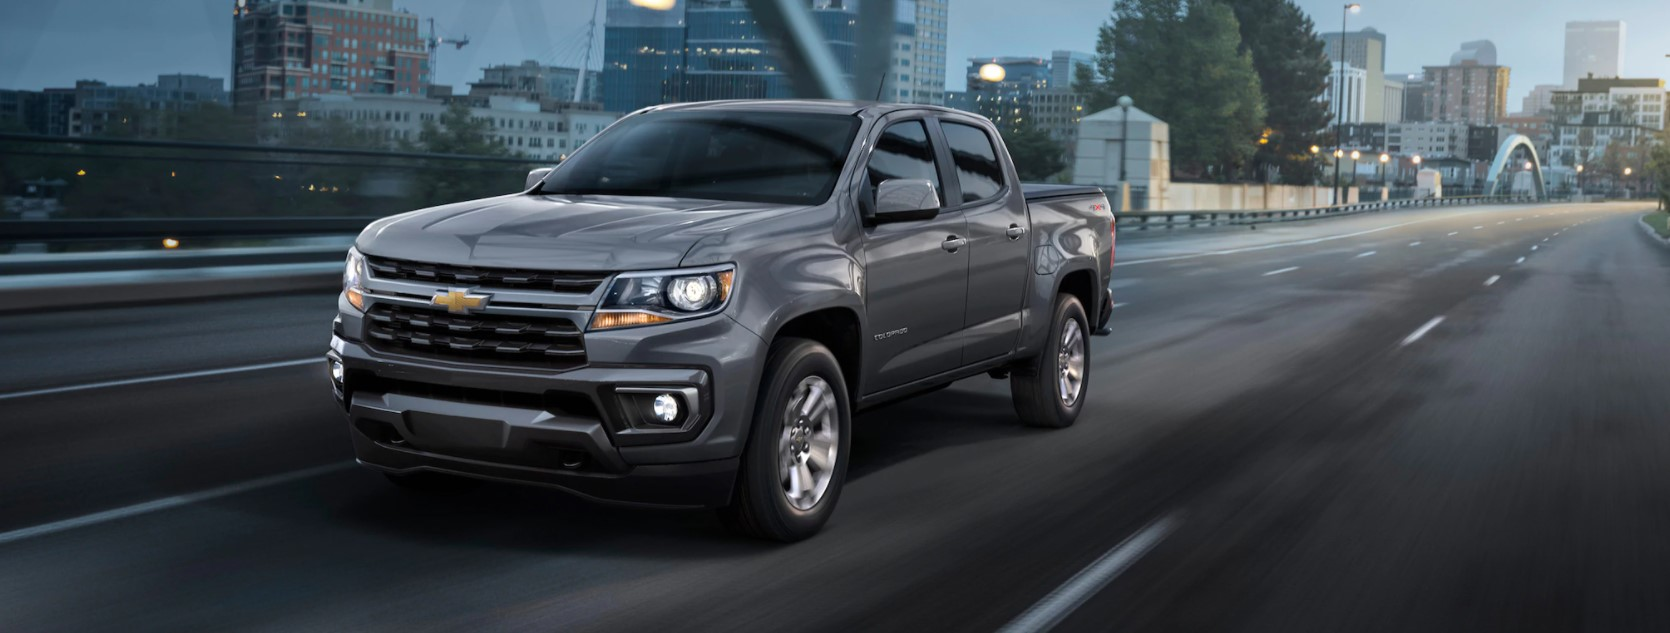 2021 Chevy Colorado Safety Feature